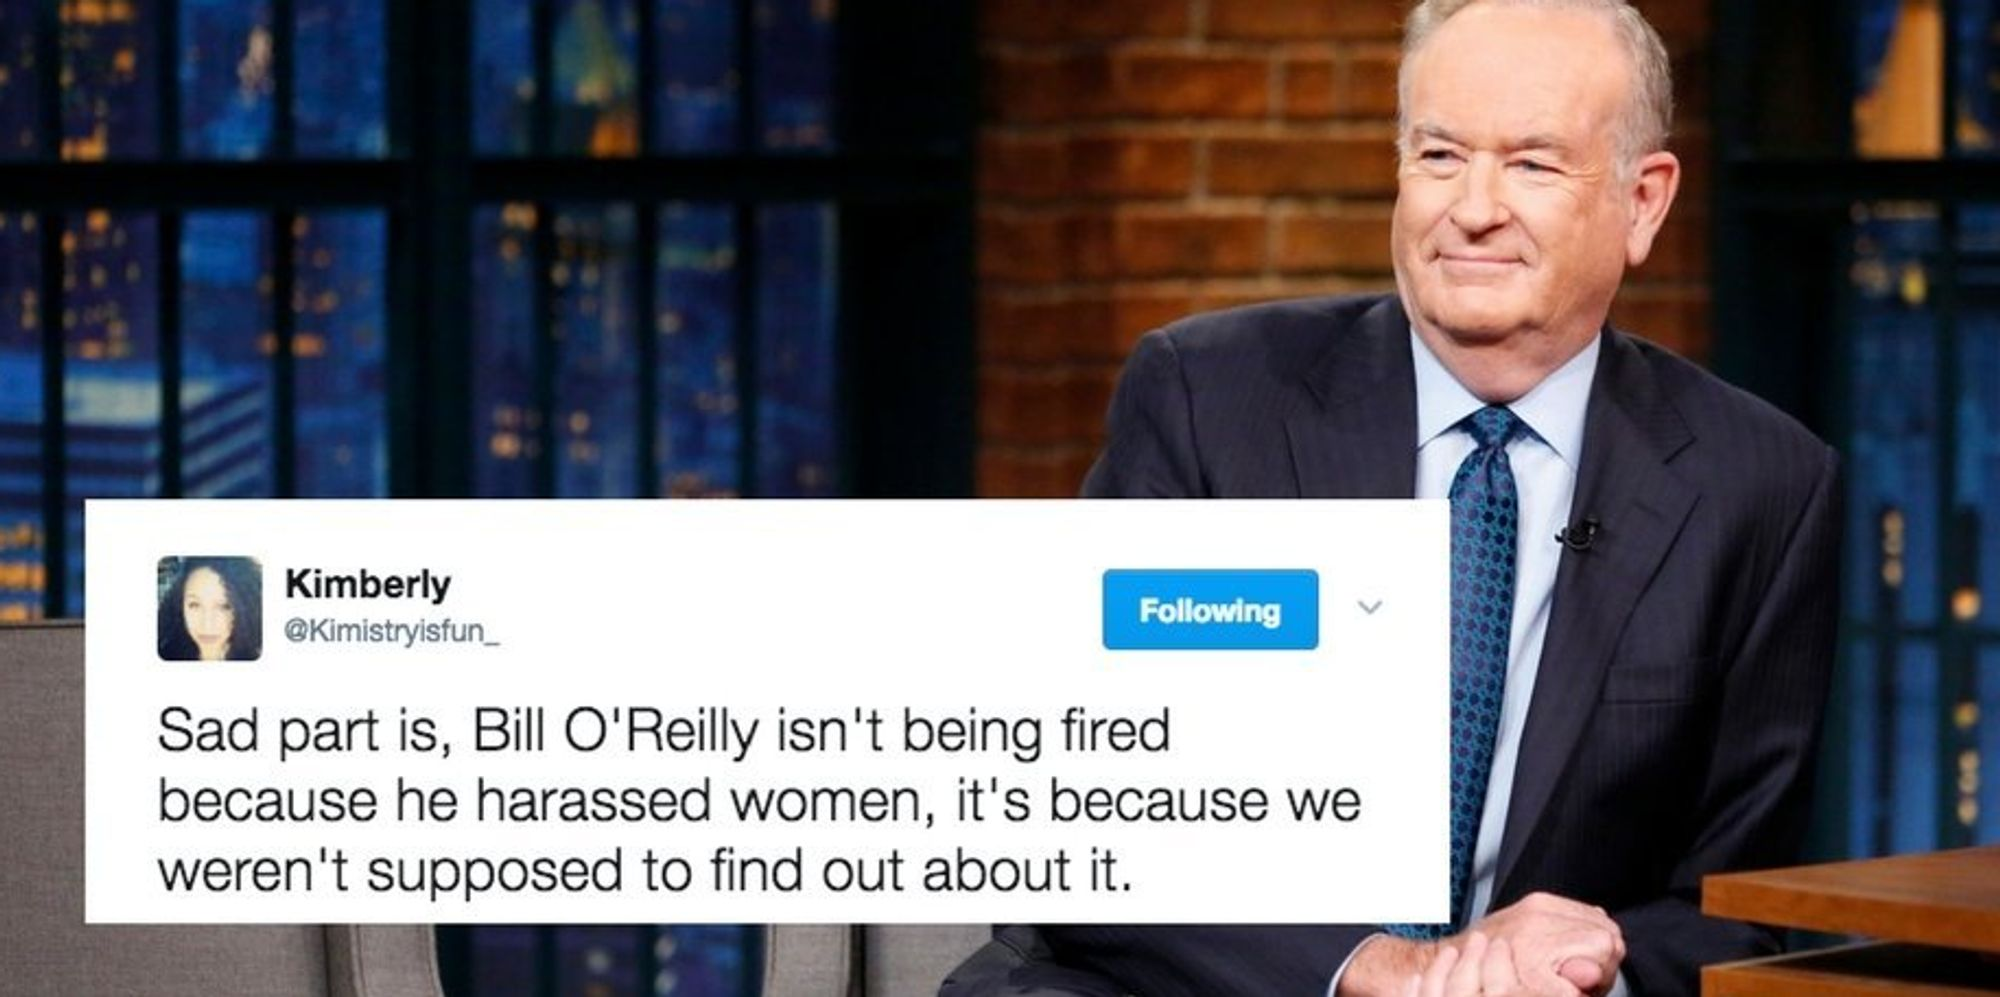 twitter reacts appropriately to bill o reilly getting the ax at twitter reacts appropriately to bill o reilly getting the ax at fox news the huffington post